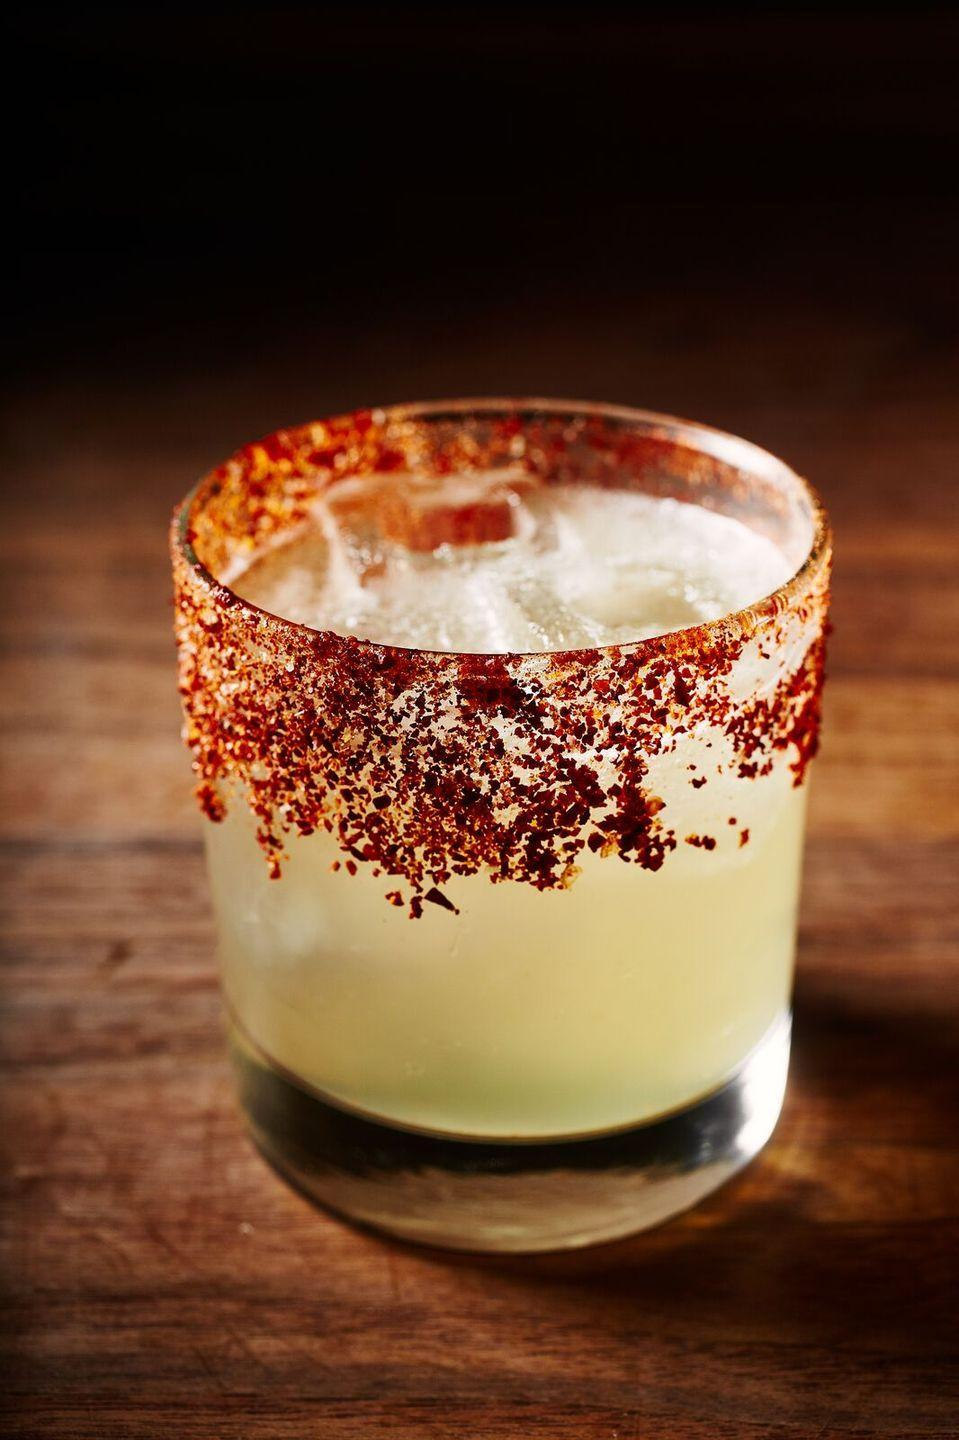 """<p><strong>Ingredients</strong></p><p>2 oz Avion Silver Tequila<br>.5 oz Grand Marnier<br>.5 oz lime juice<br>.5 oz lemon juice<br>1.5 oz Ghost Chili Simple Syrup*</p><p><strong>Instructions</strong></p><p>Add all ingredients together with ice in a cocktail shaker, shake and strain over fresh ice in a rocks glass that has a chili salt rim. Serve with a lime wheel and enjoy.</p><p>*<em>Ghost Chili Simple Syrup</em>: Take 1 cup of water and 1 cup of brown demerara with one dried ghost chili pepper, bring to a boil and let cool.</p><p><em>Courtesy of Alex Guarnaschelli of <a href=""""http://www.butterrestaurant.com/"""" rel=""""nofollow noopener"""" target=""""_blank"""" data-ylk=""""slk:Butter"""" class=""""link rapid-noclick-resp"""">Butter</a> in New York City</em></p><p><strong>More:</strong> <a href=""""https://www.townandcountrymag.com/leisure/drinks/g3314/tequila-drinks/"""" rel=""""nofollow noopener"""" target=""""_blank"""" data-ylk=""""slk:The Most Exciting Tequila Drinks"""" class=""""link rapid-noclick-resp"""">The Most Exciting Tequila Drinks</a><br></p>"""